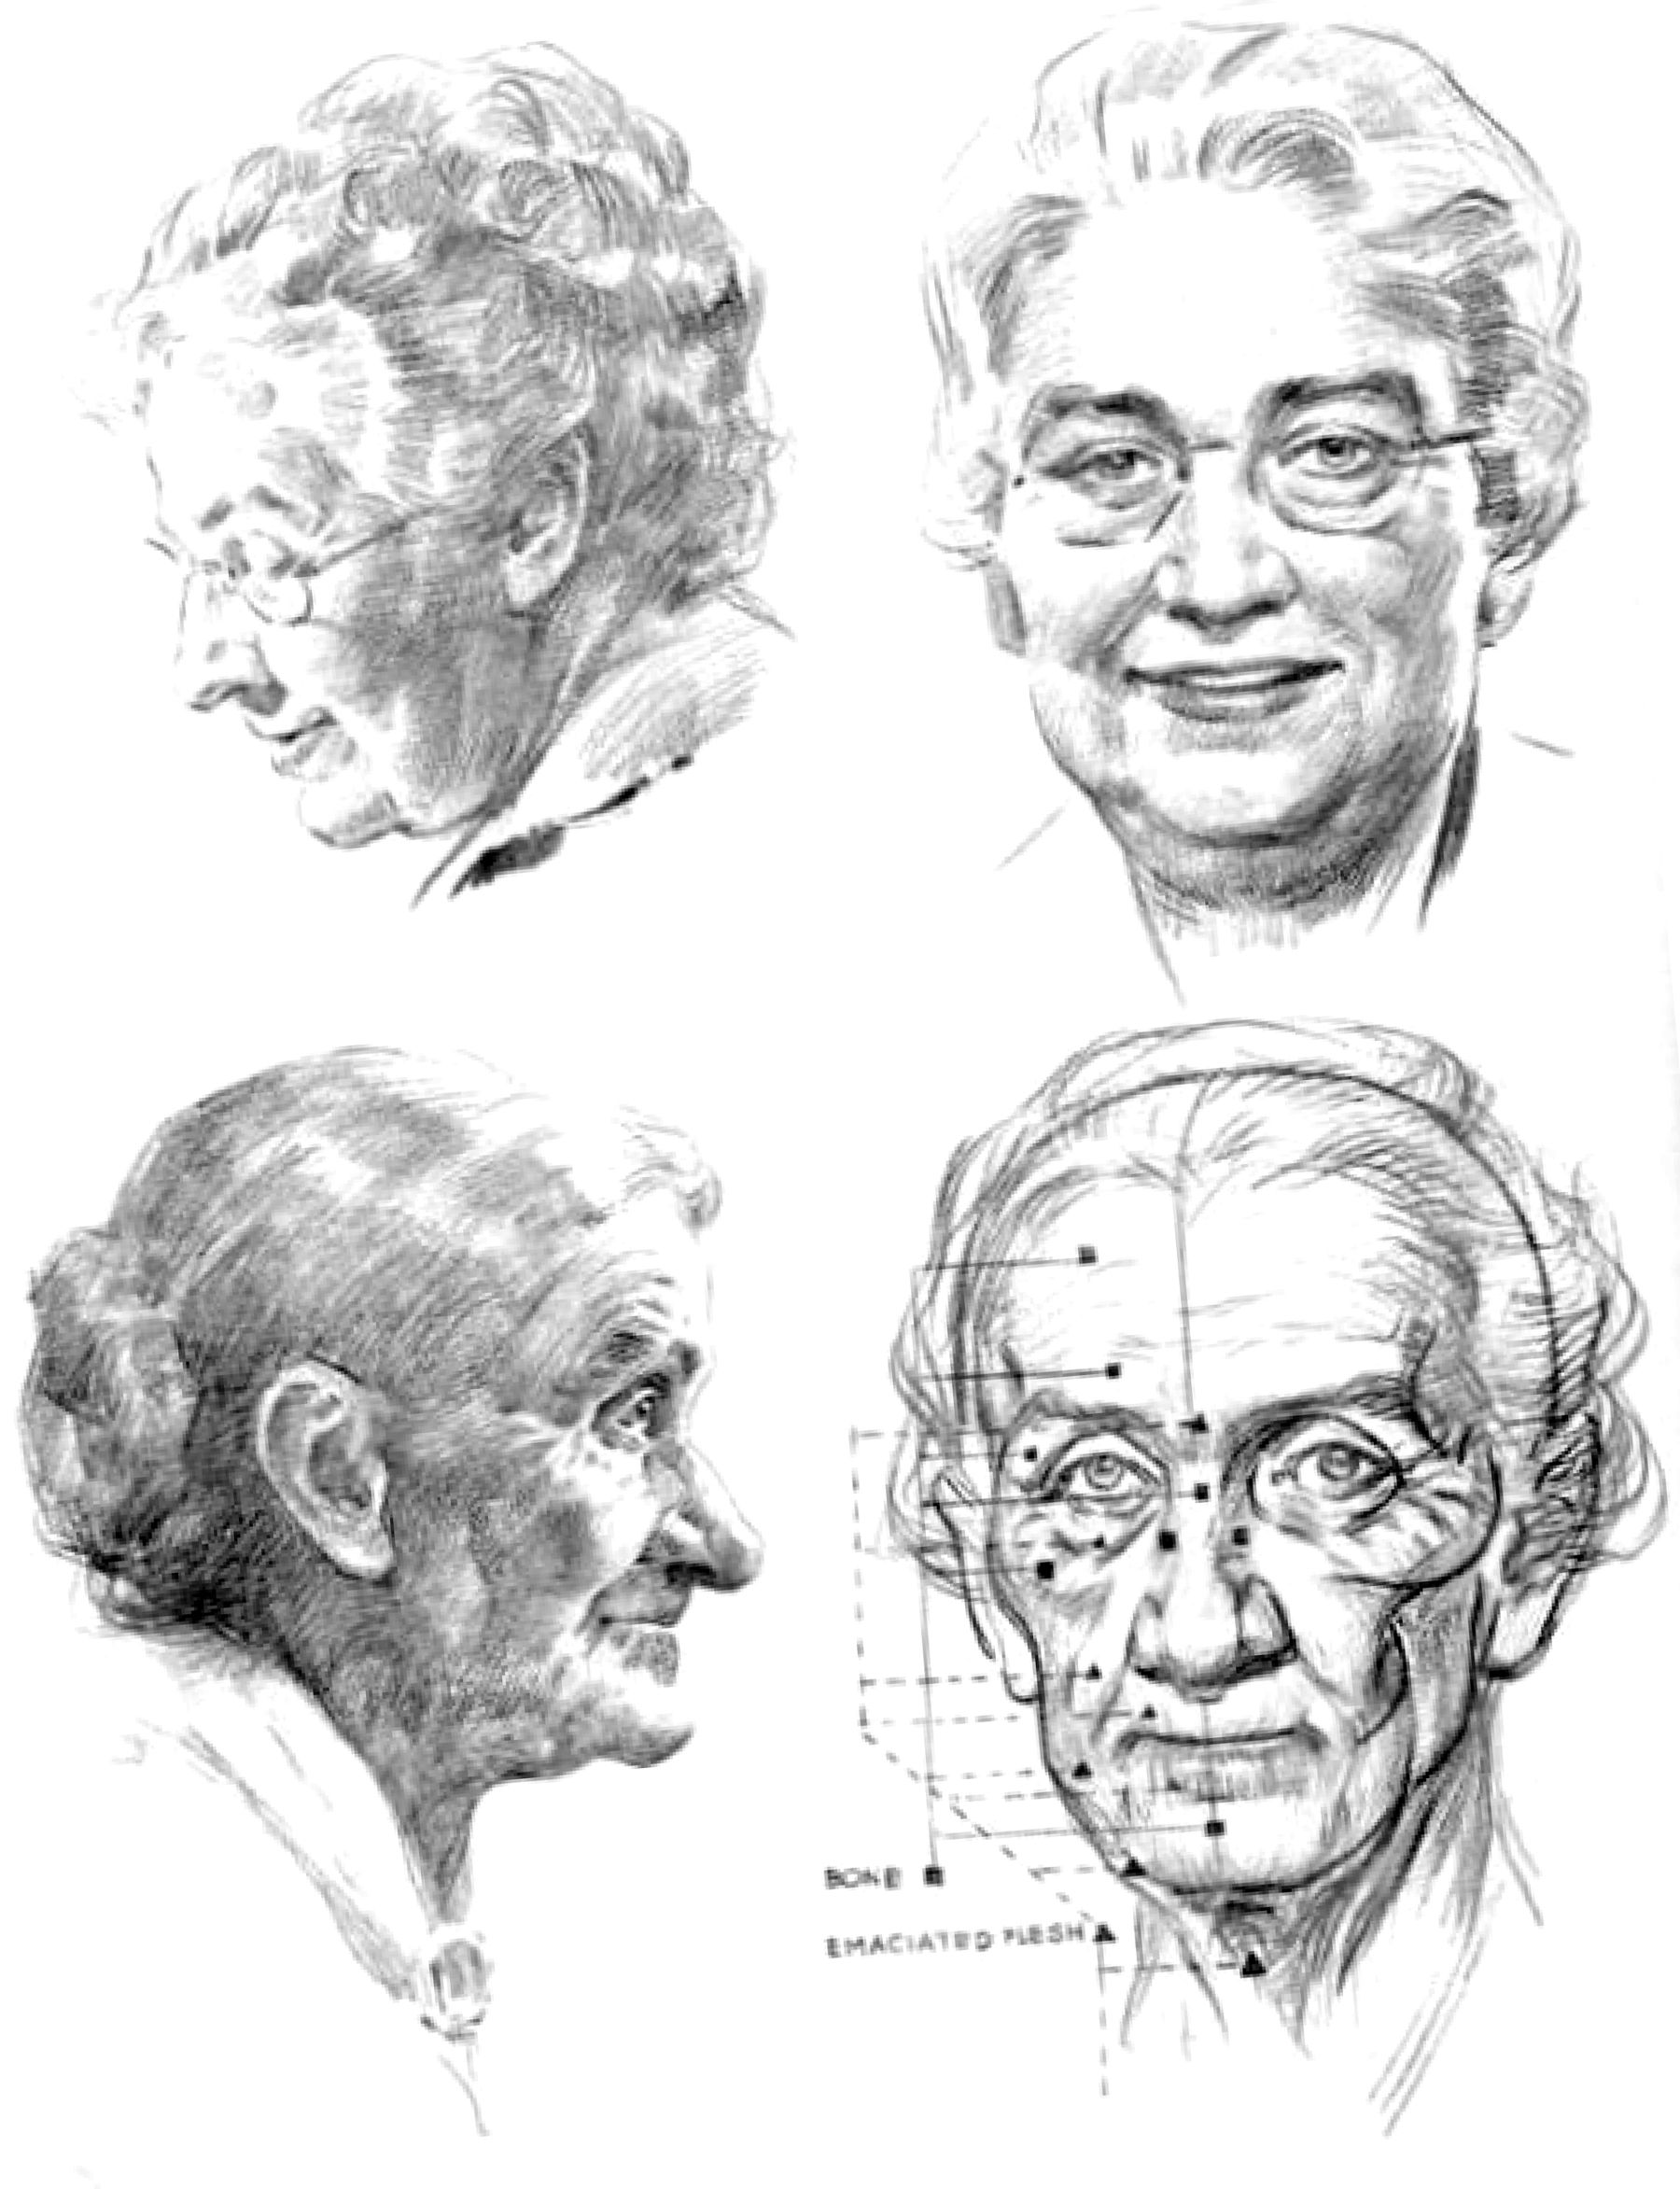 How to draw a portrait in stages with a pencil